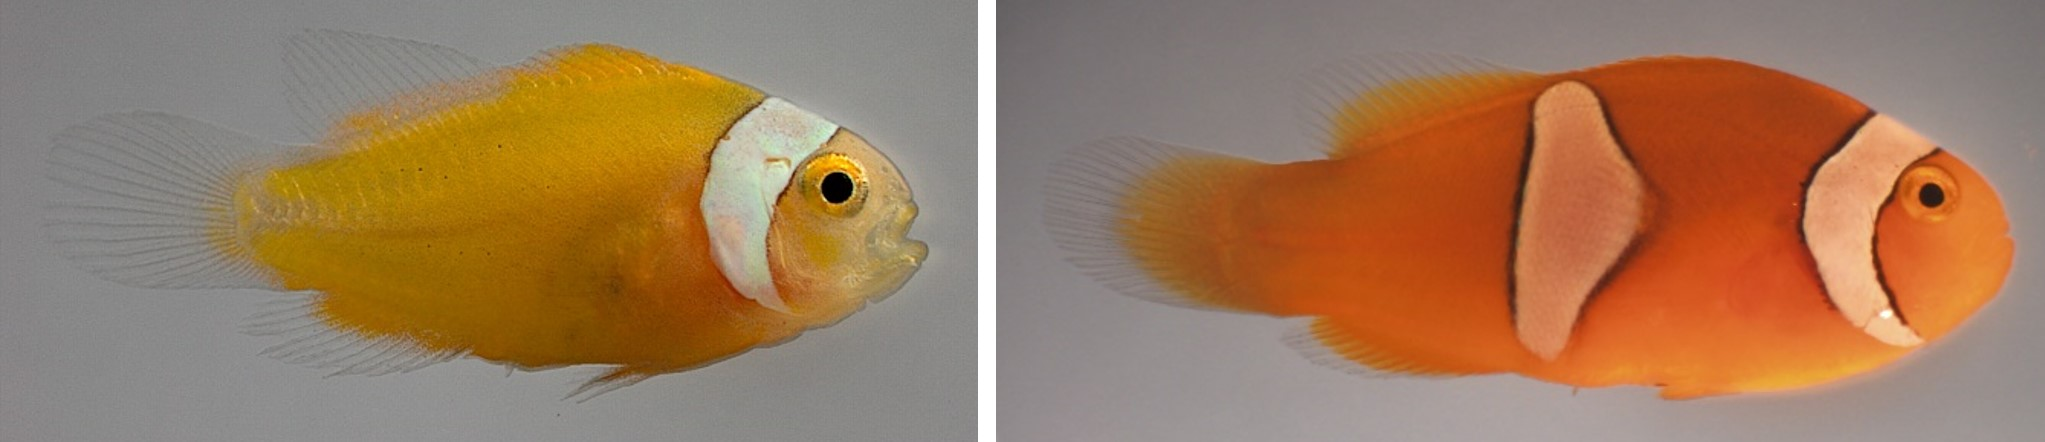 Two clownfish, one with one stripe, the other with two stripes